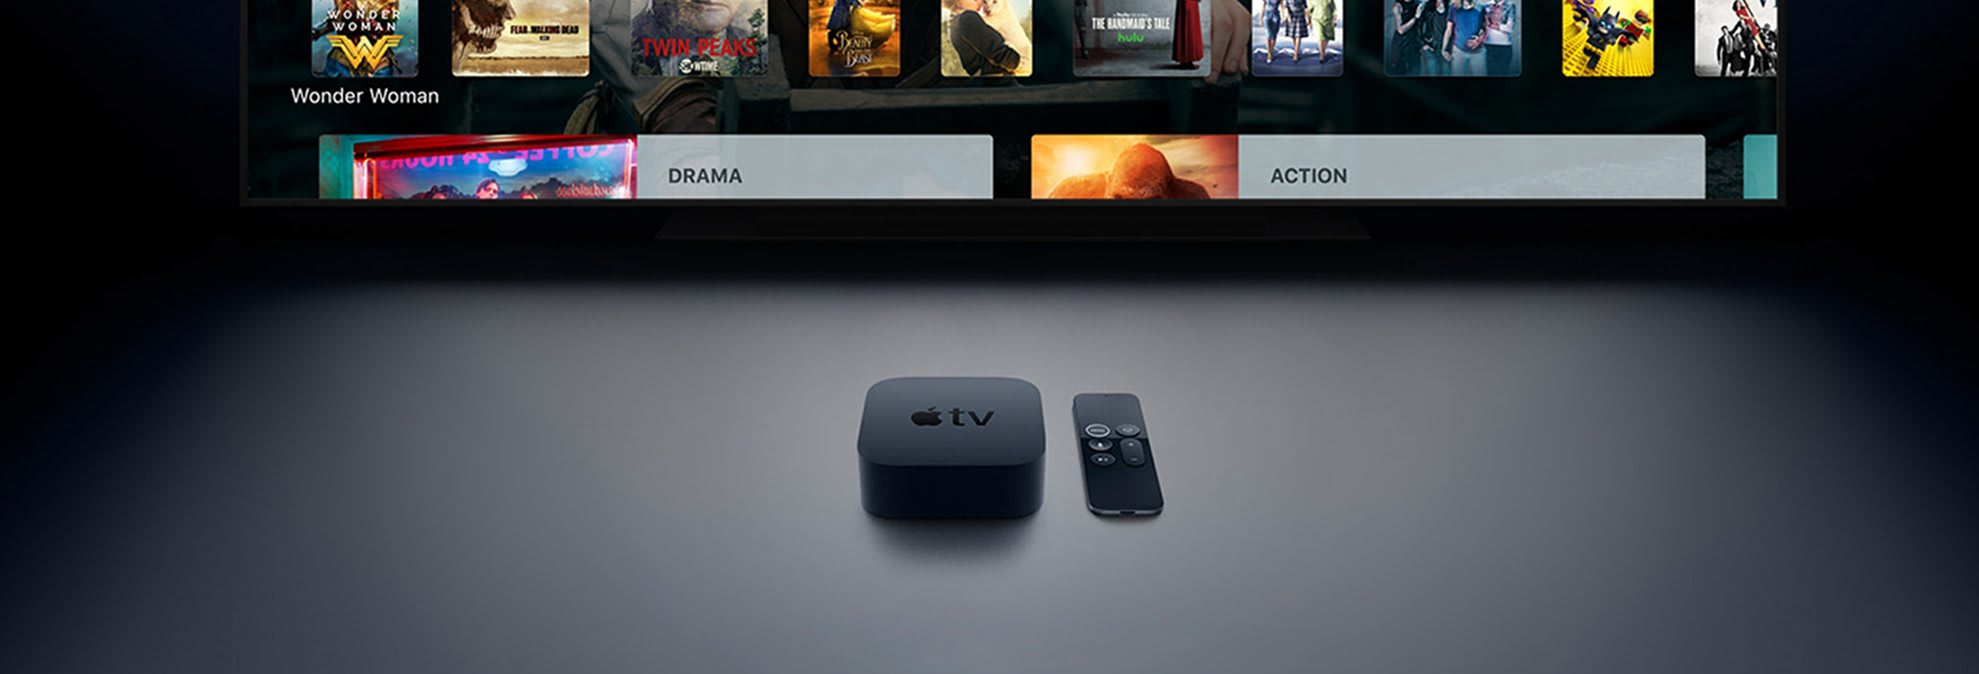 Why You Might Want an Apple TV 4K - Consumer Reports